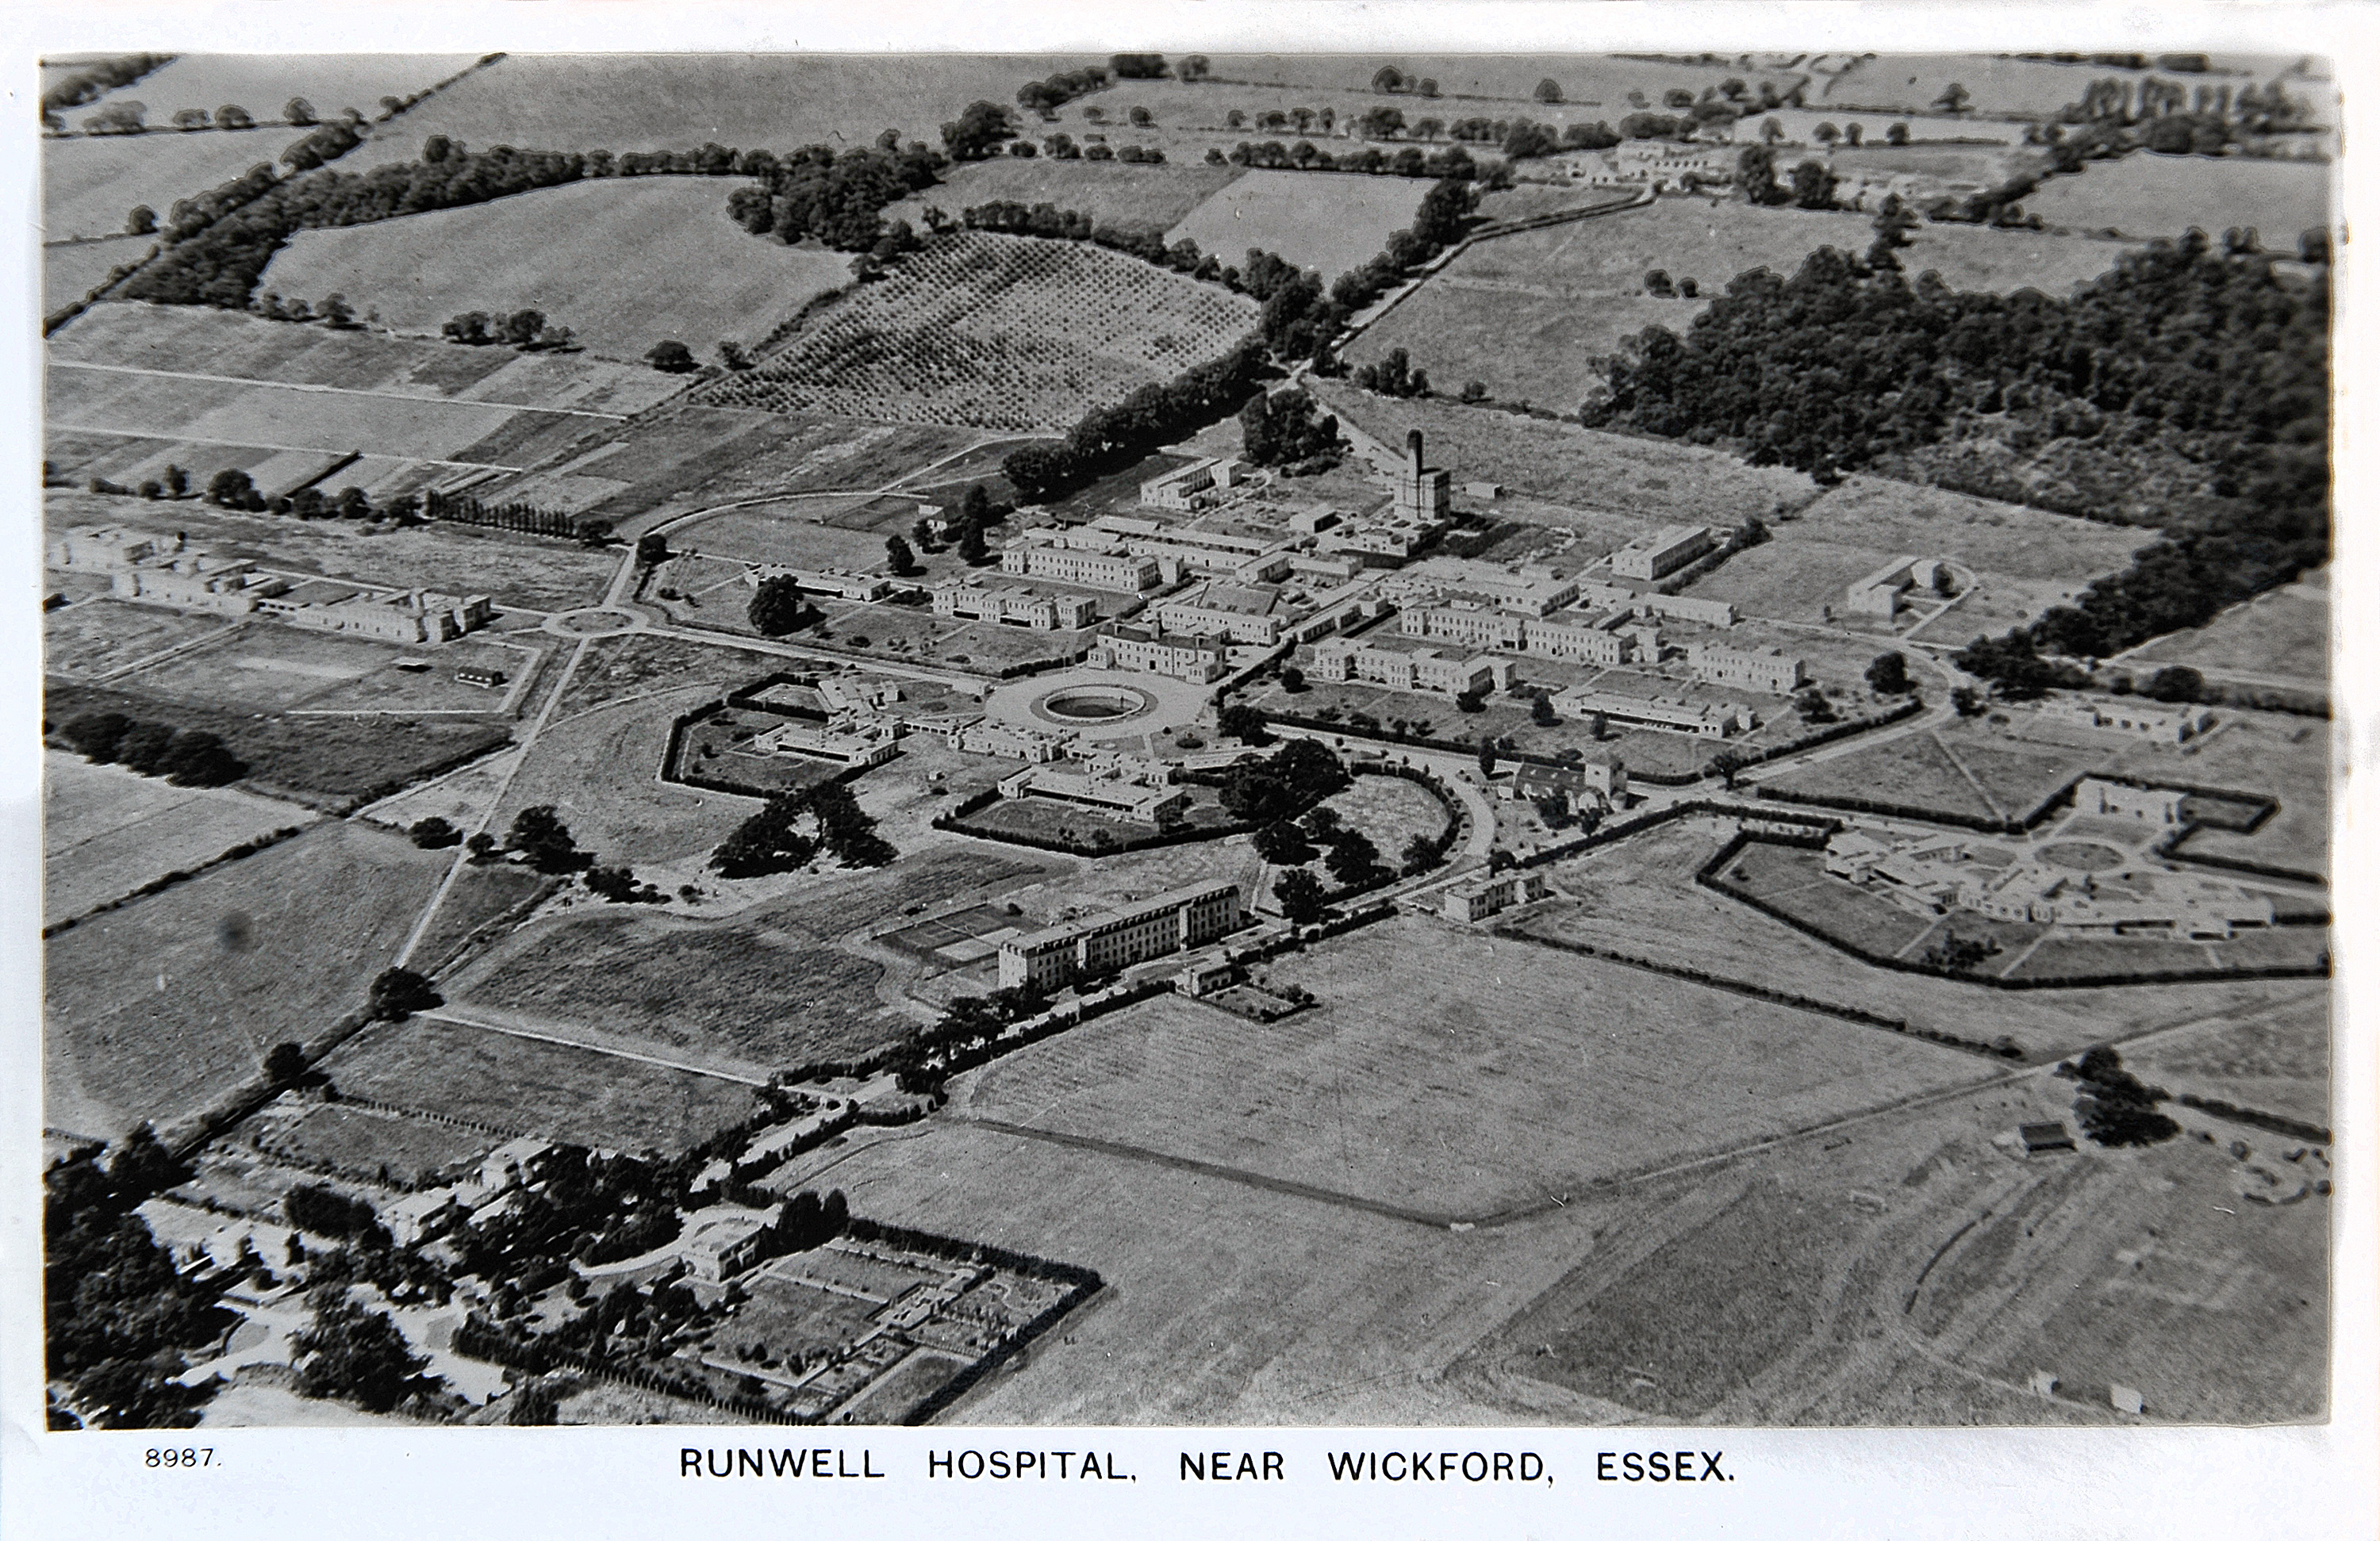 Runwell Hospital, Wickford